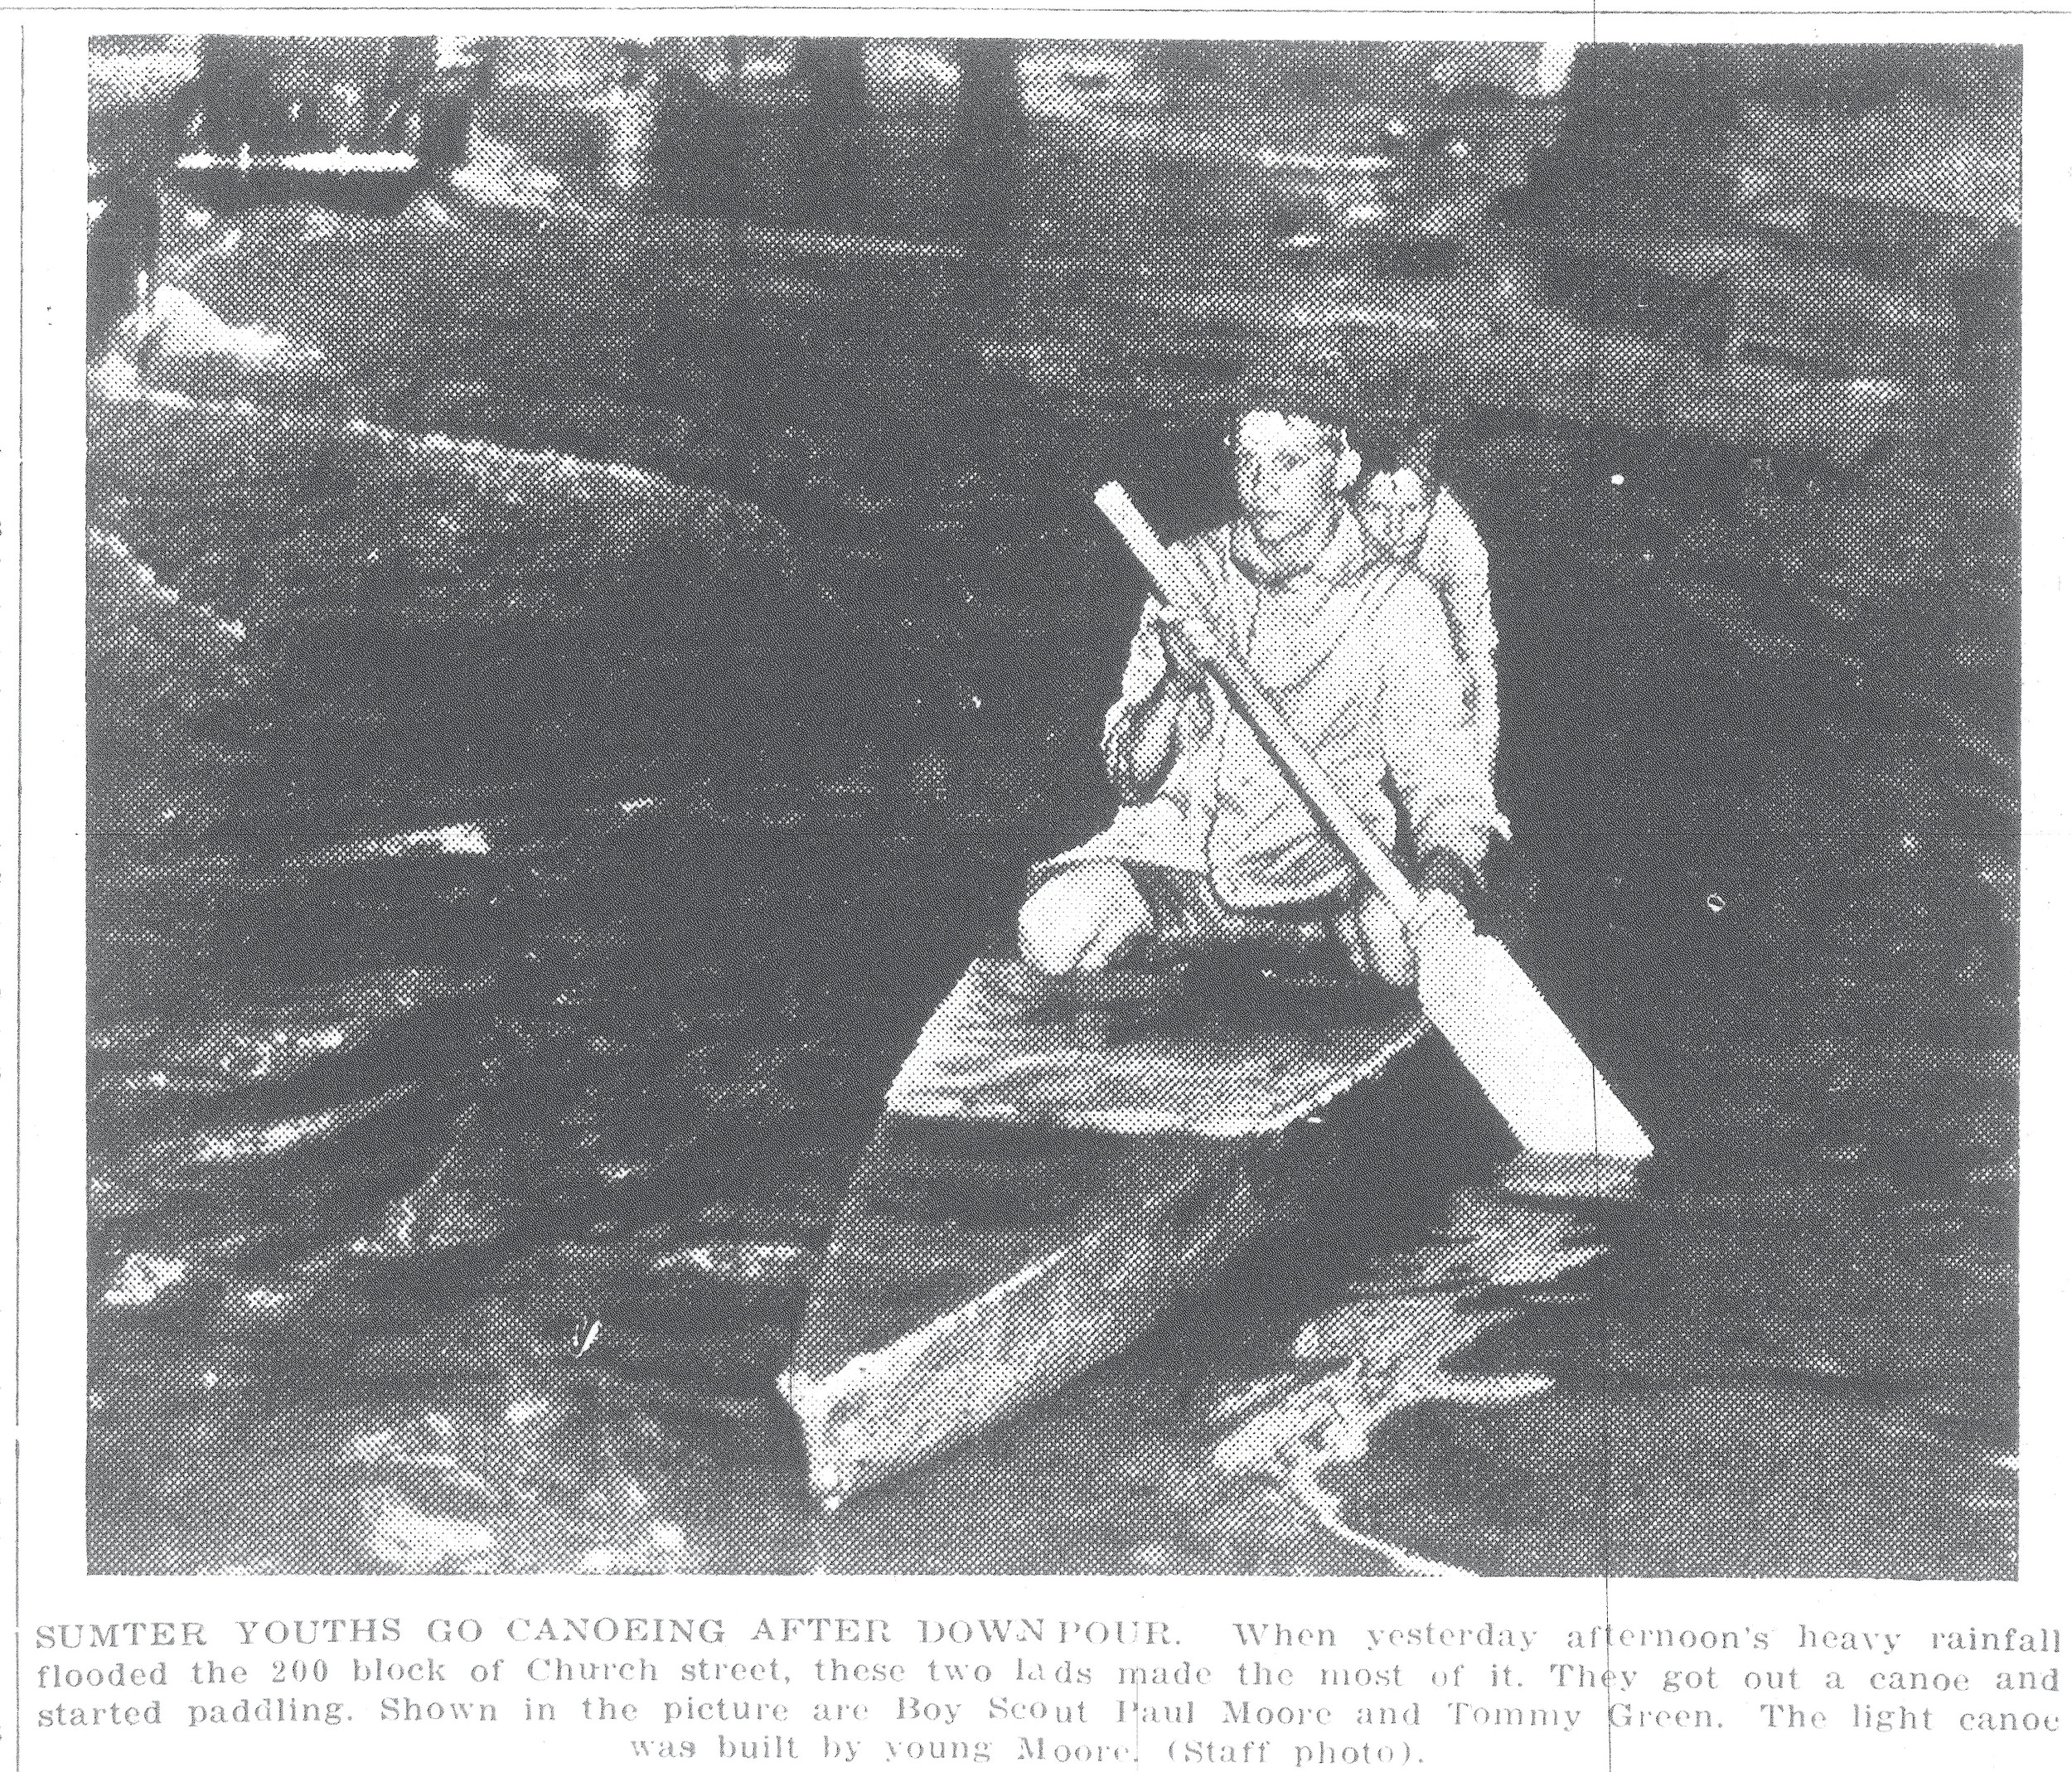 When a heavy afternoon rainfall flooded the 200 block of Church Street in 1943, two children, Boy Scout Paul Moore and Tommy Green, made the most of it. They got a canoe made by Moore and started paddling.